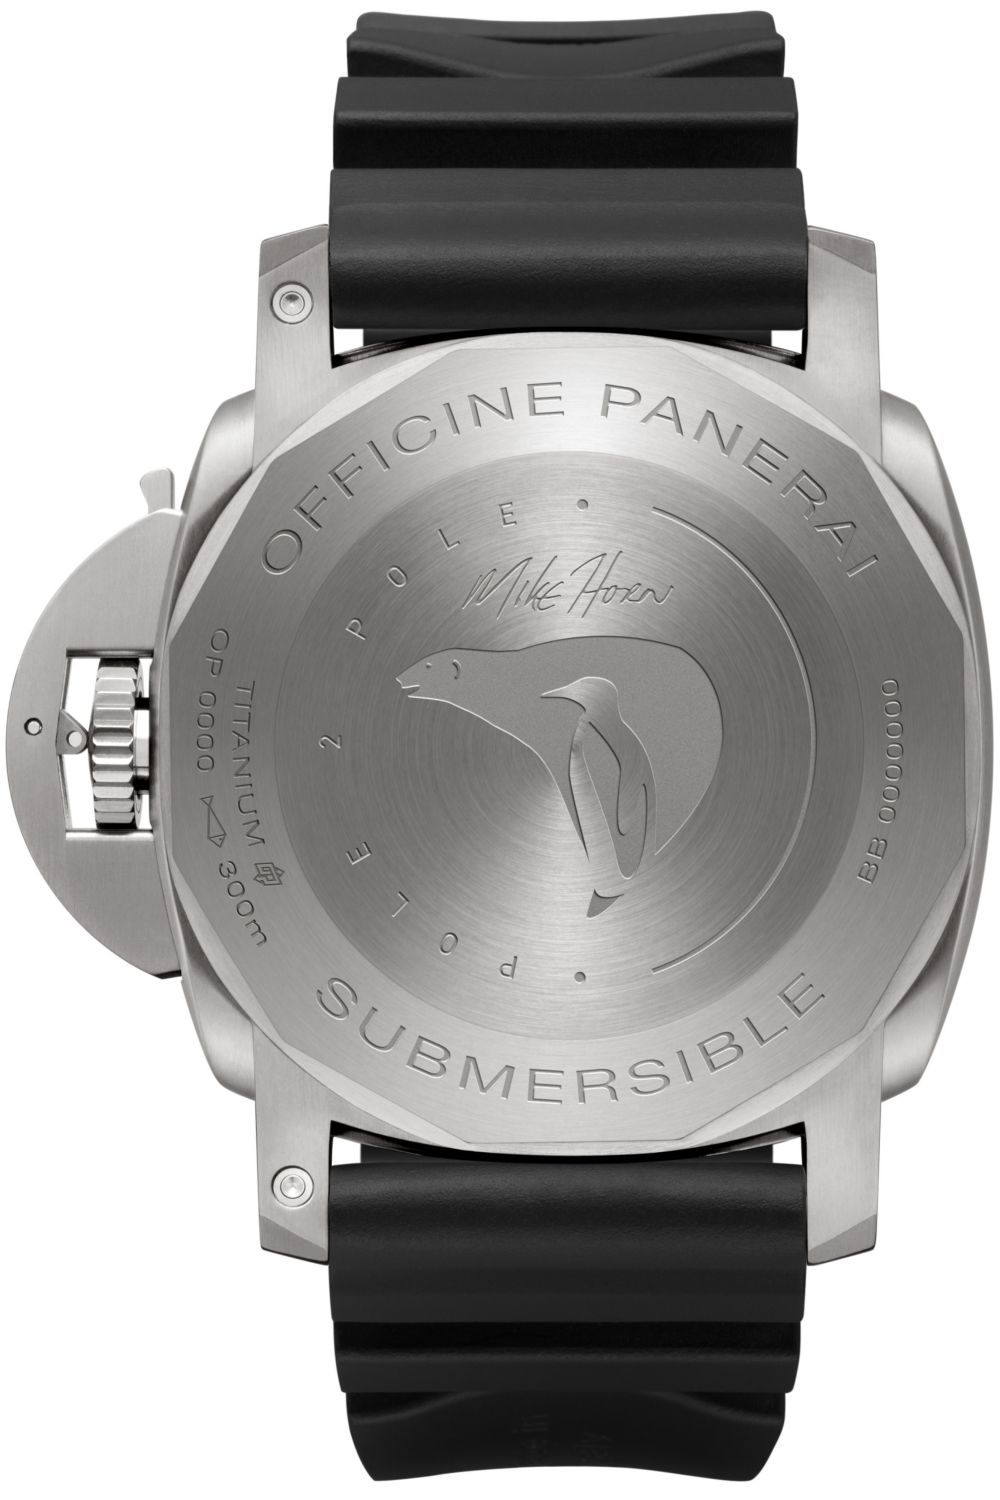 Panerai-Luminor-Submersible-Pam00719-Pole2Pole-3.jpg